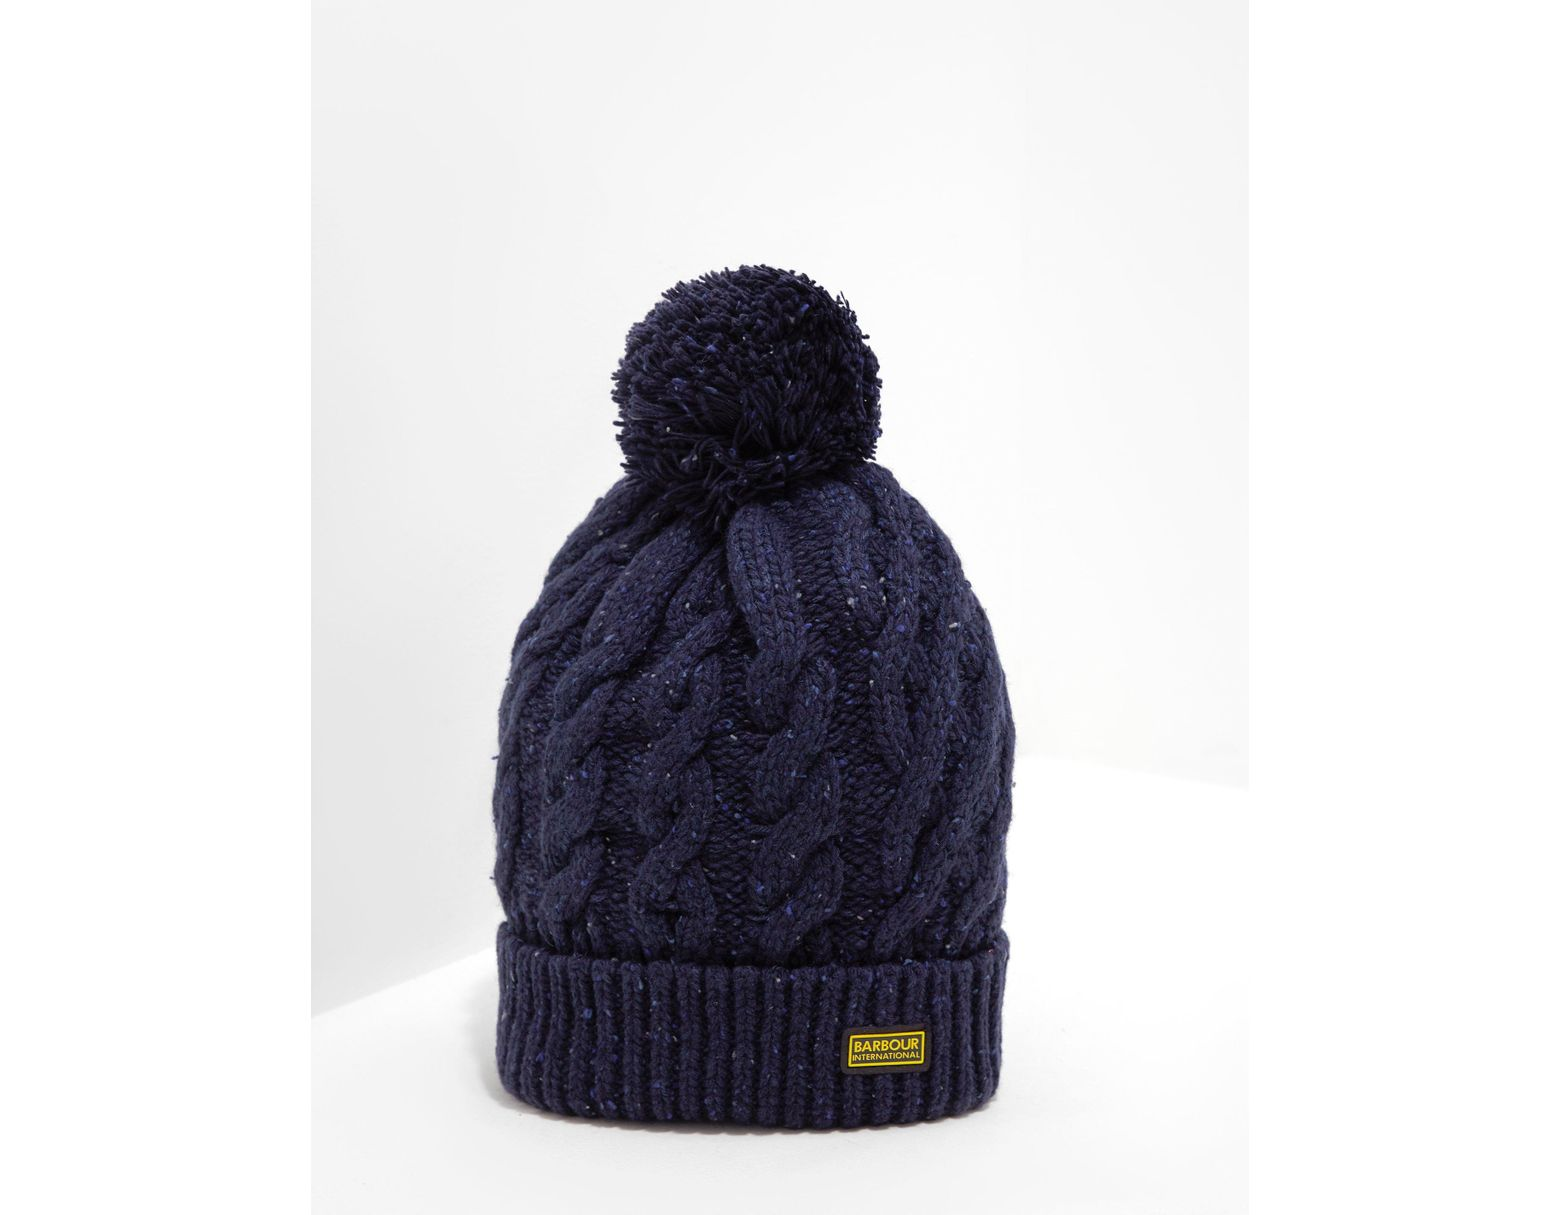 09a7790c Men's Bobble Hat - Exclusively To Tessuti Navy Blue